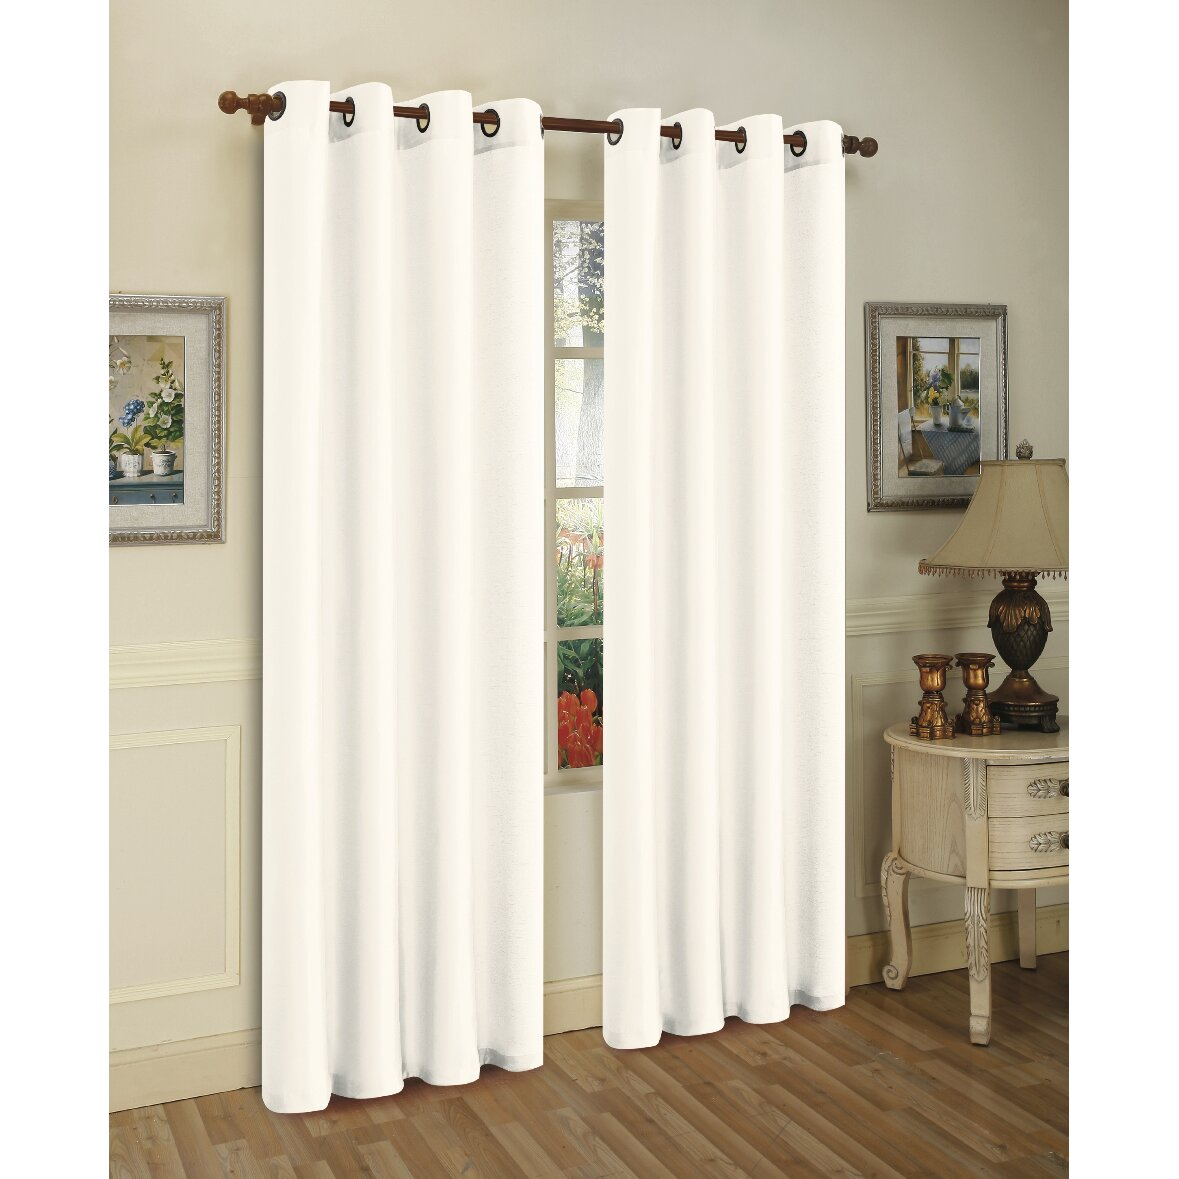 Sheer outdoor curtains - Solid Semi Sheer Outdoor Grommet Curtain Panels